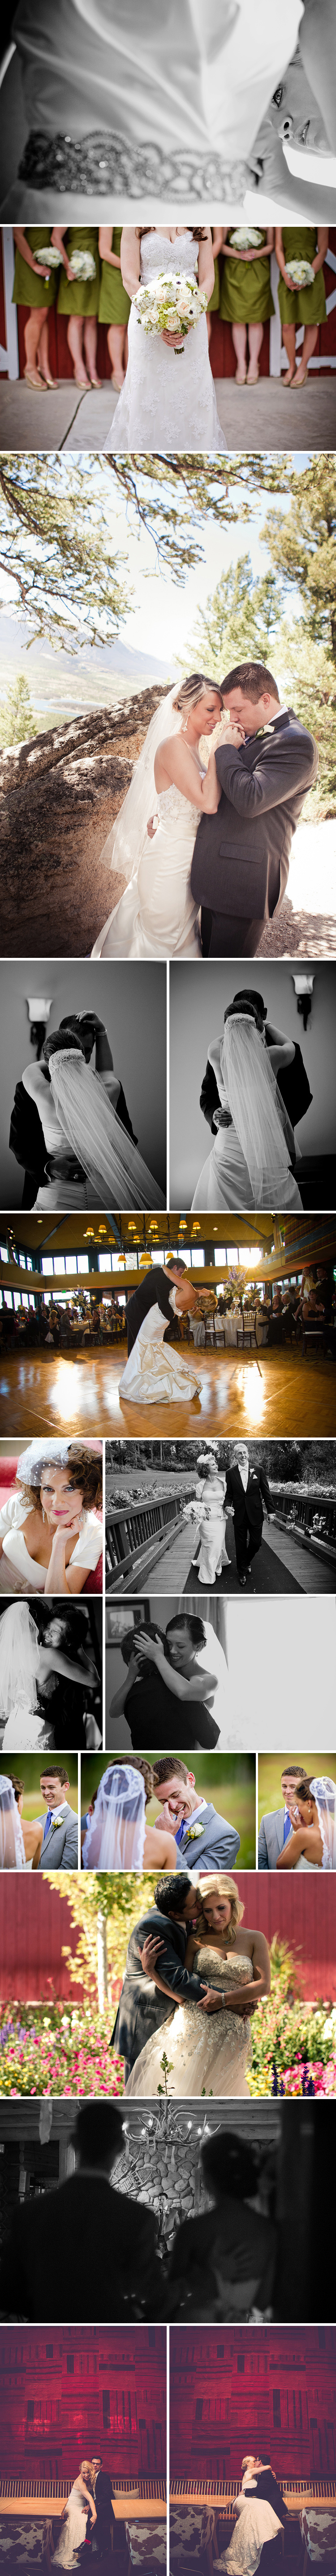 denver-weddings-2012-colorado-wedding-photography-2